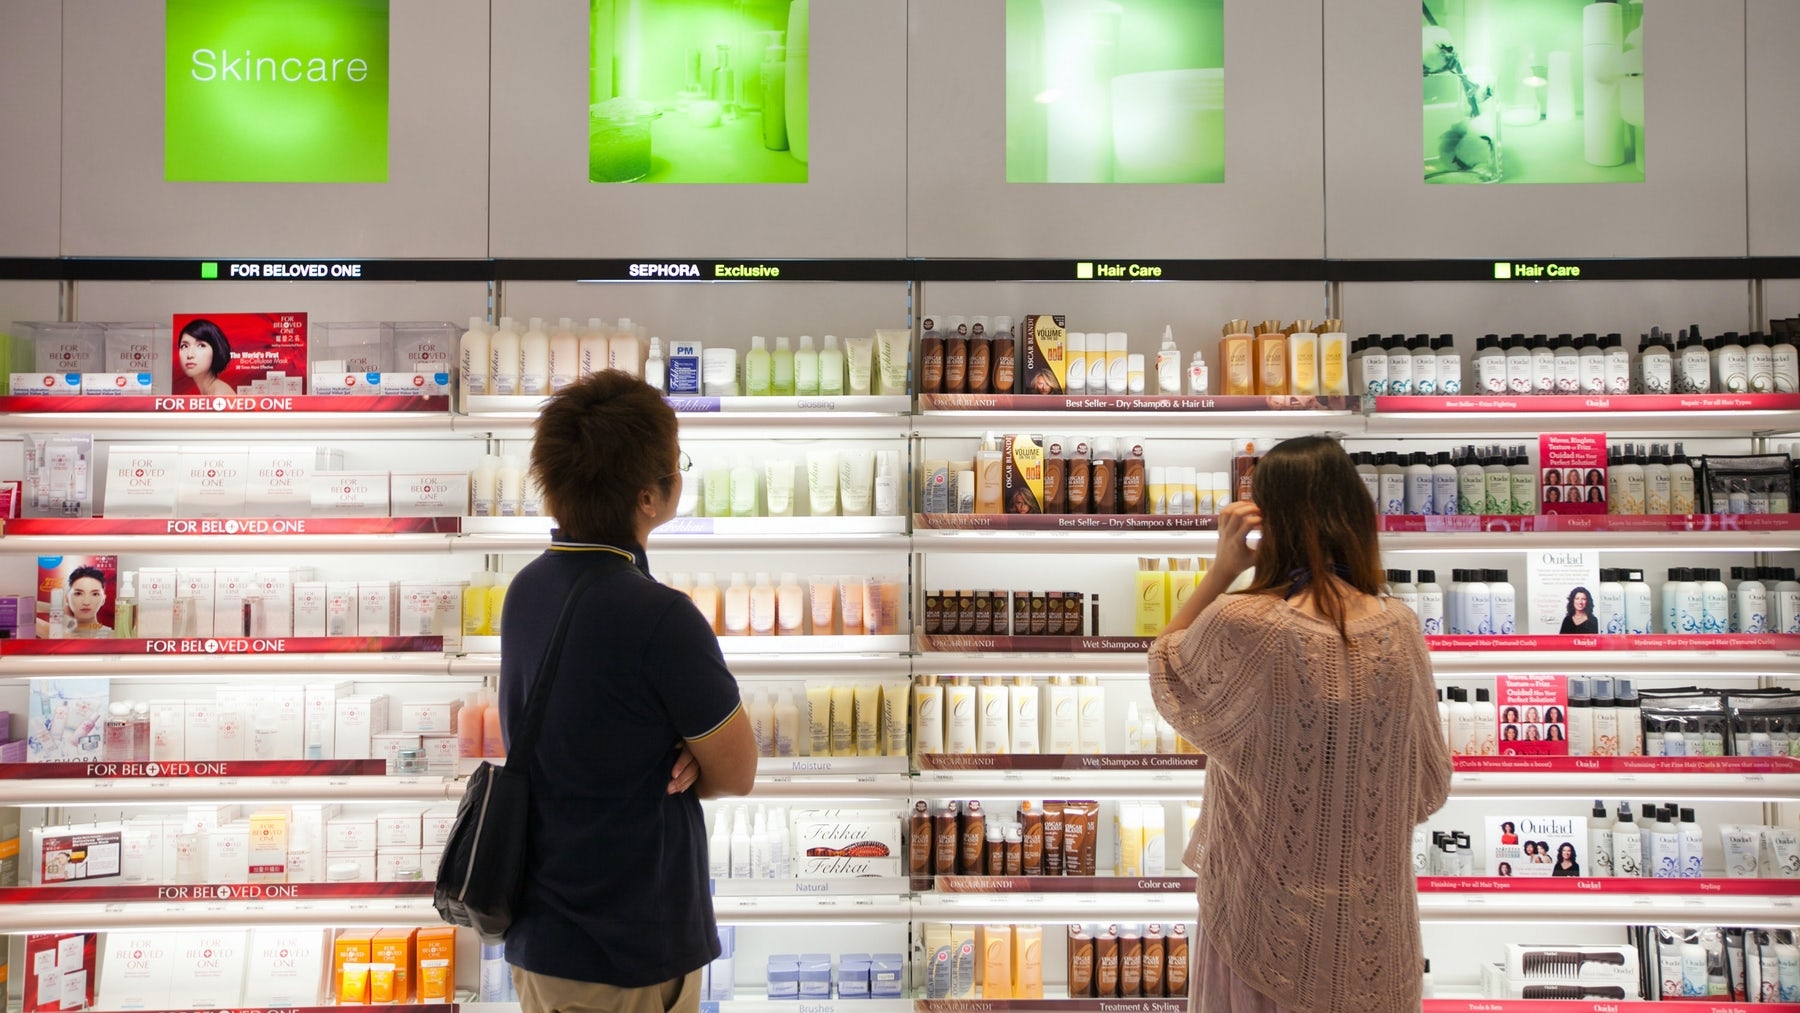 An Ulta store. Getty Images.